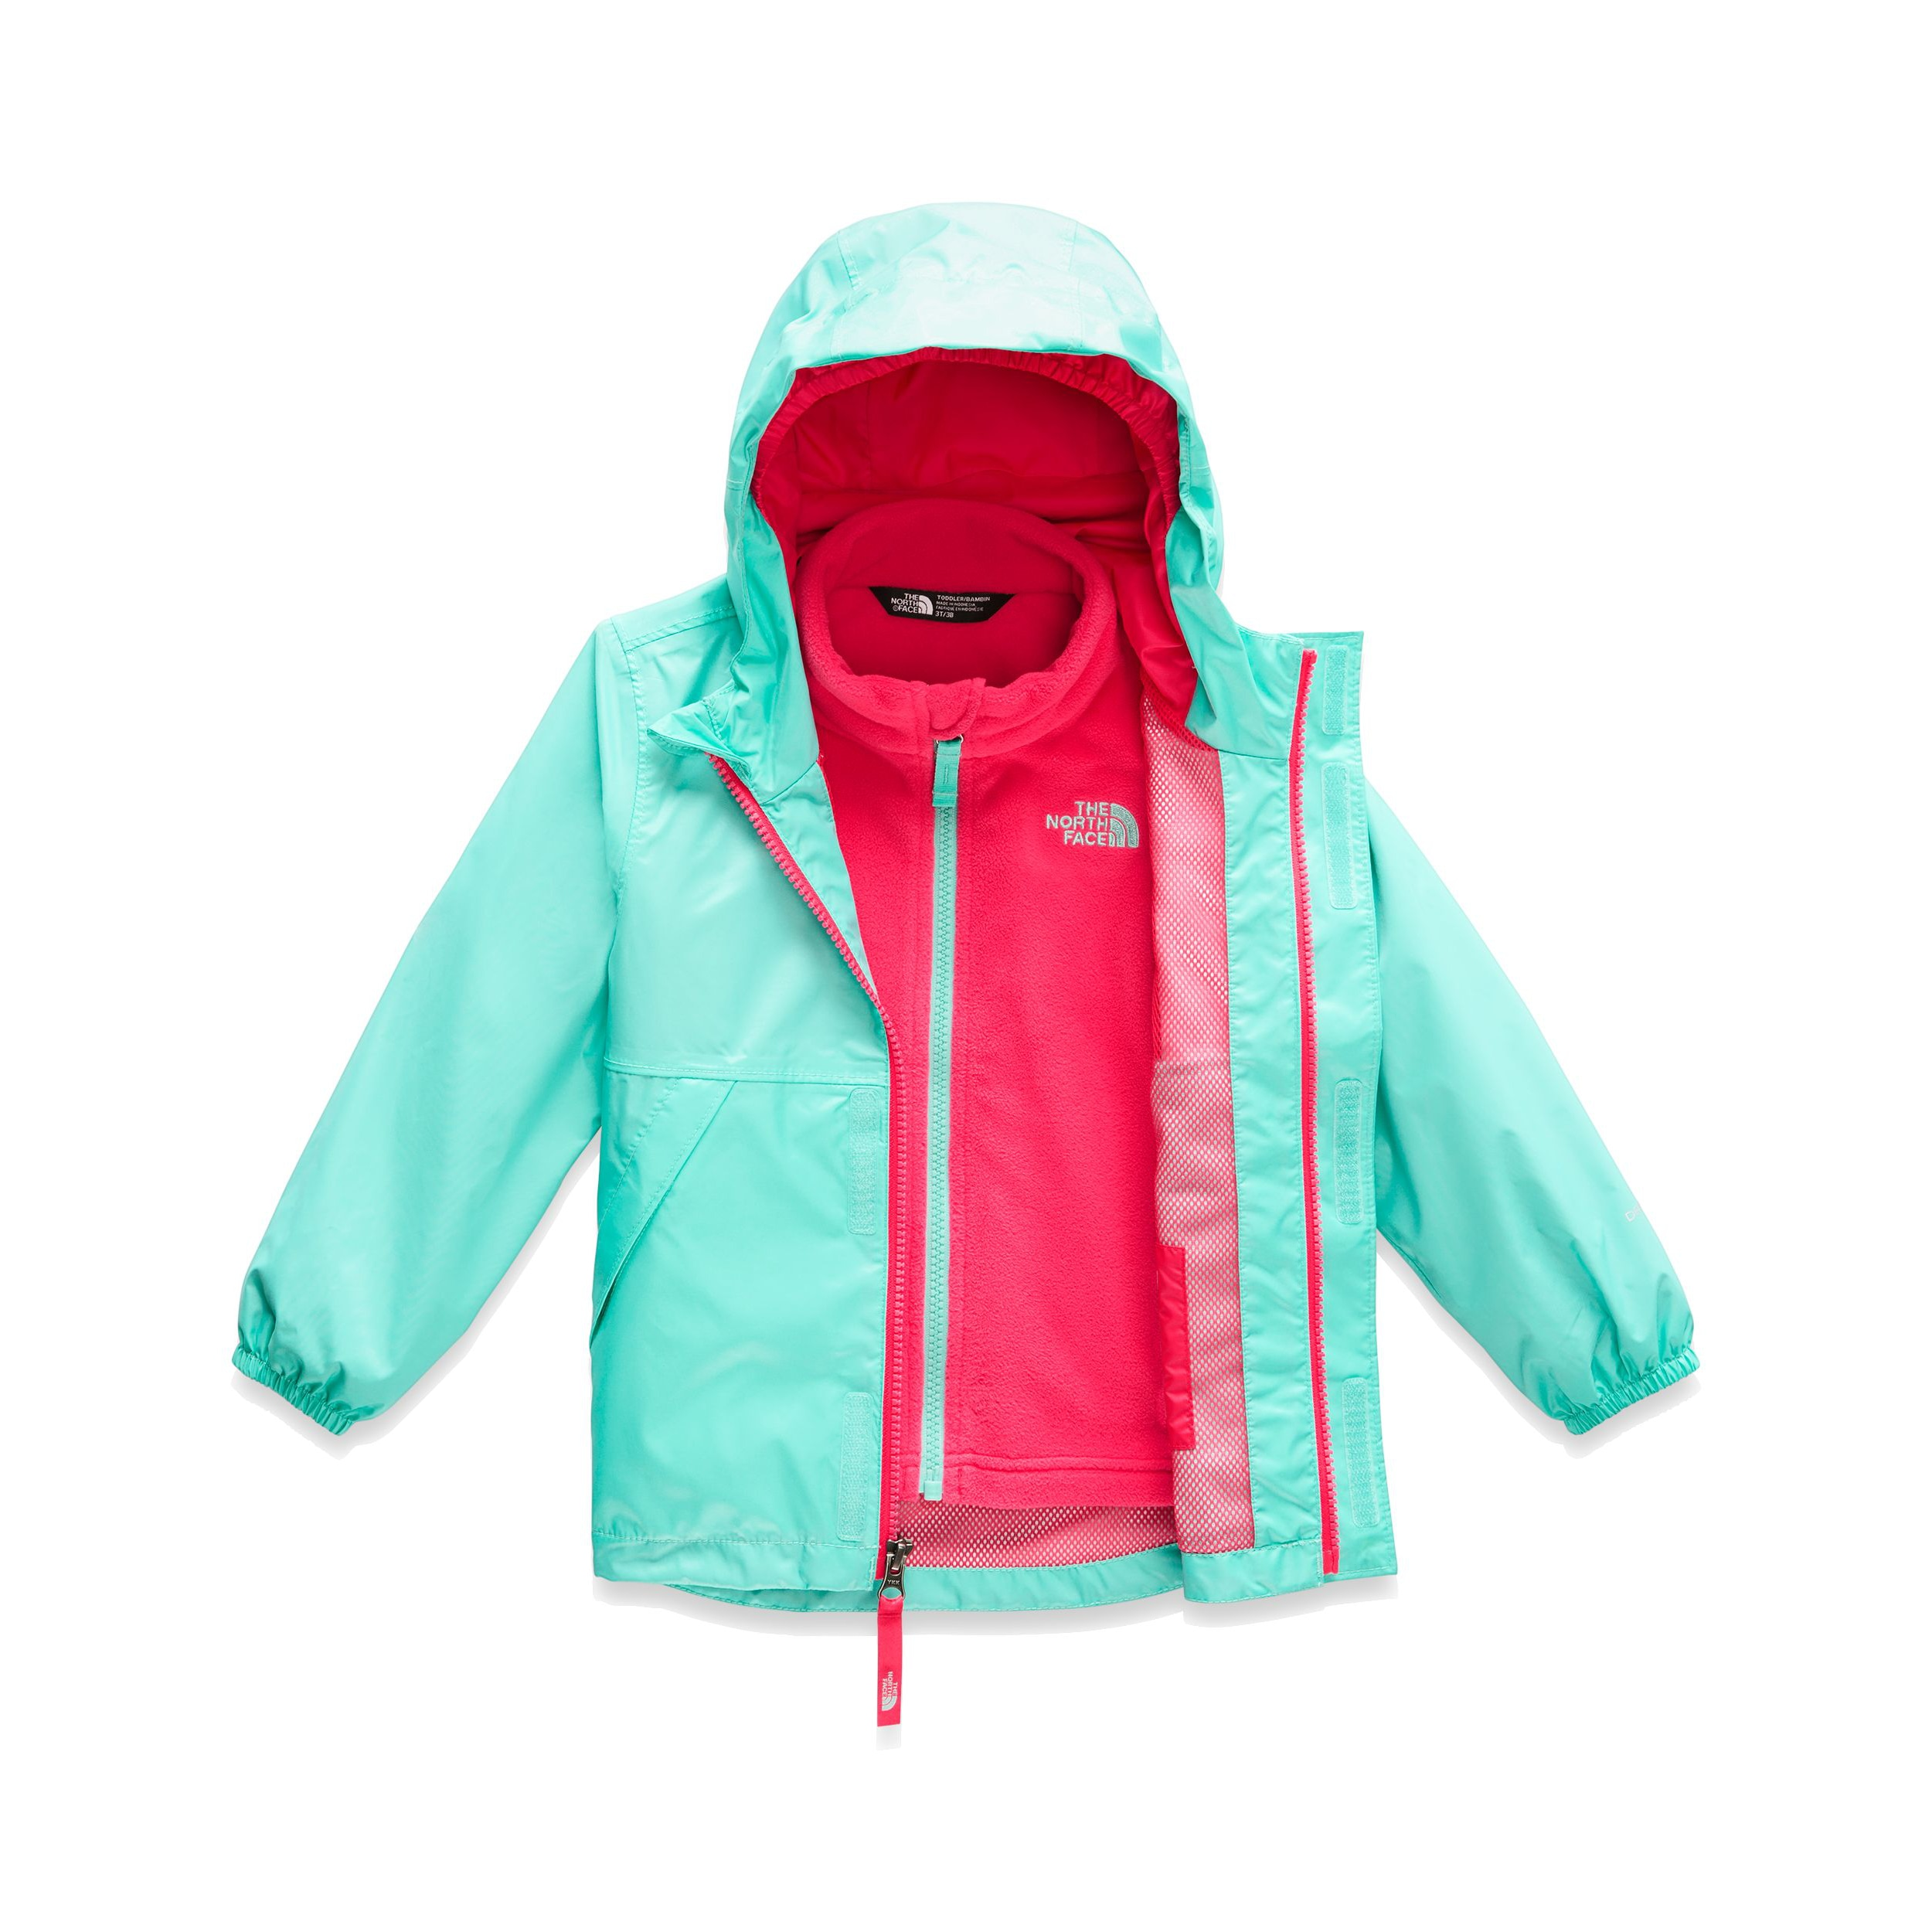 Stormy Rain Triclimate Jacket - Toddlers'